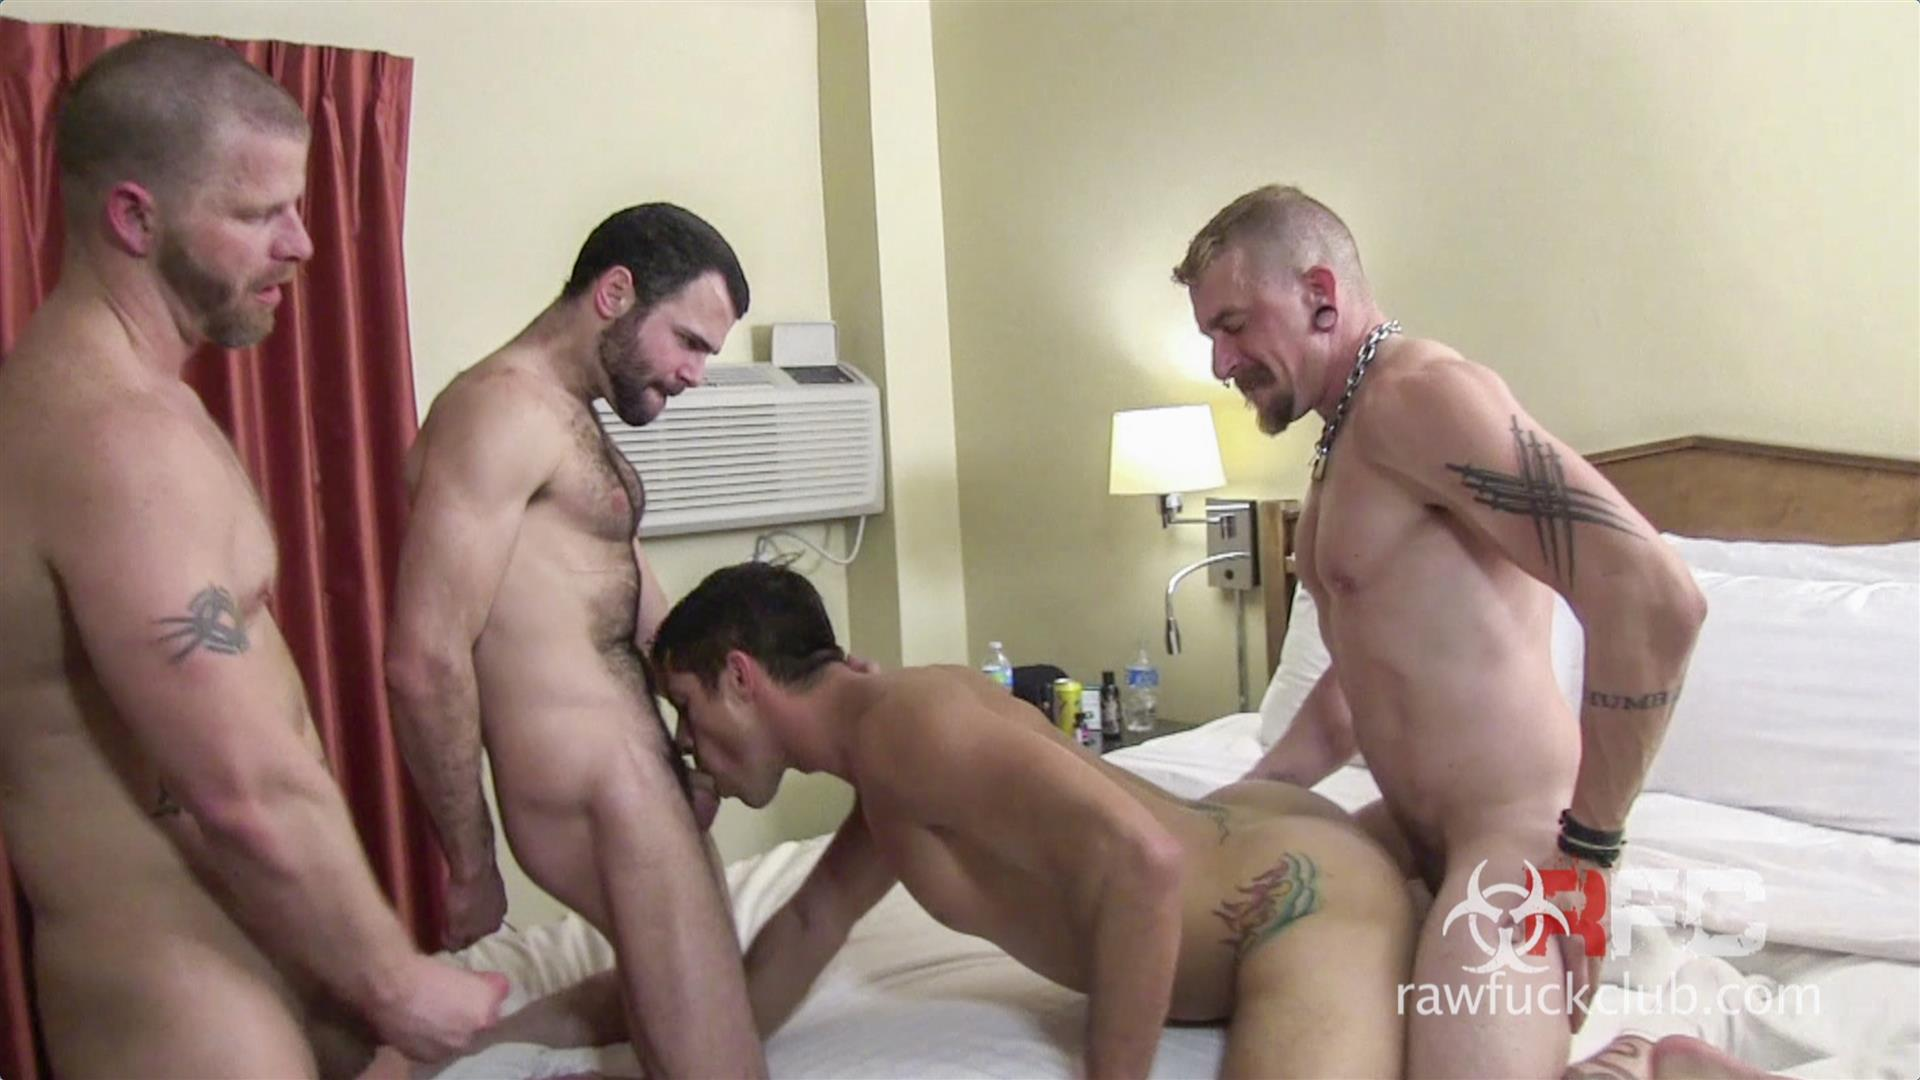 Raw Fuck Club Dylan Saunders and Dusty Williams and Jeff Kendall and Jeremy Stevens BBBH Amateur Gay Porn 07 Big Cock Amateur Hotel Bareback Sex Party